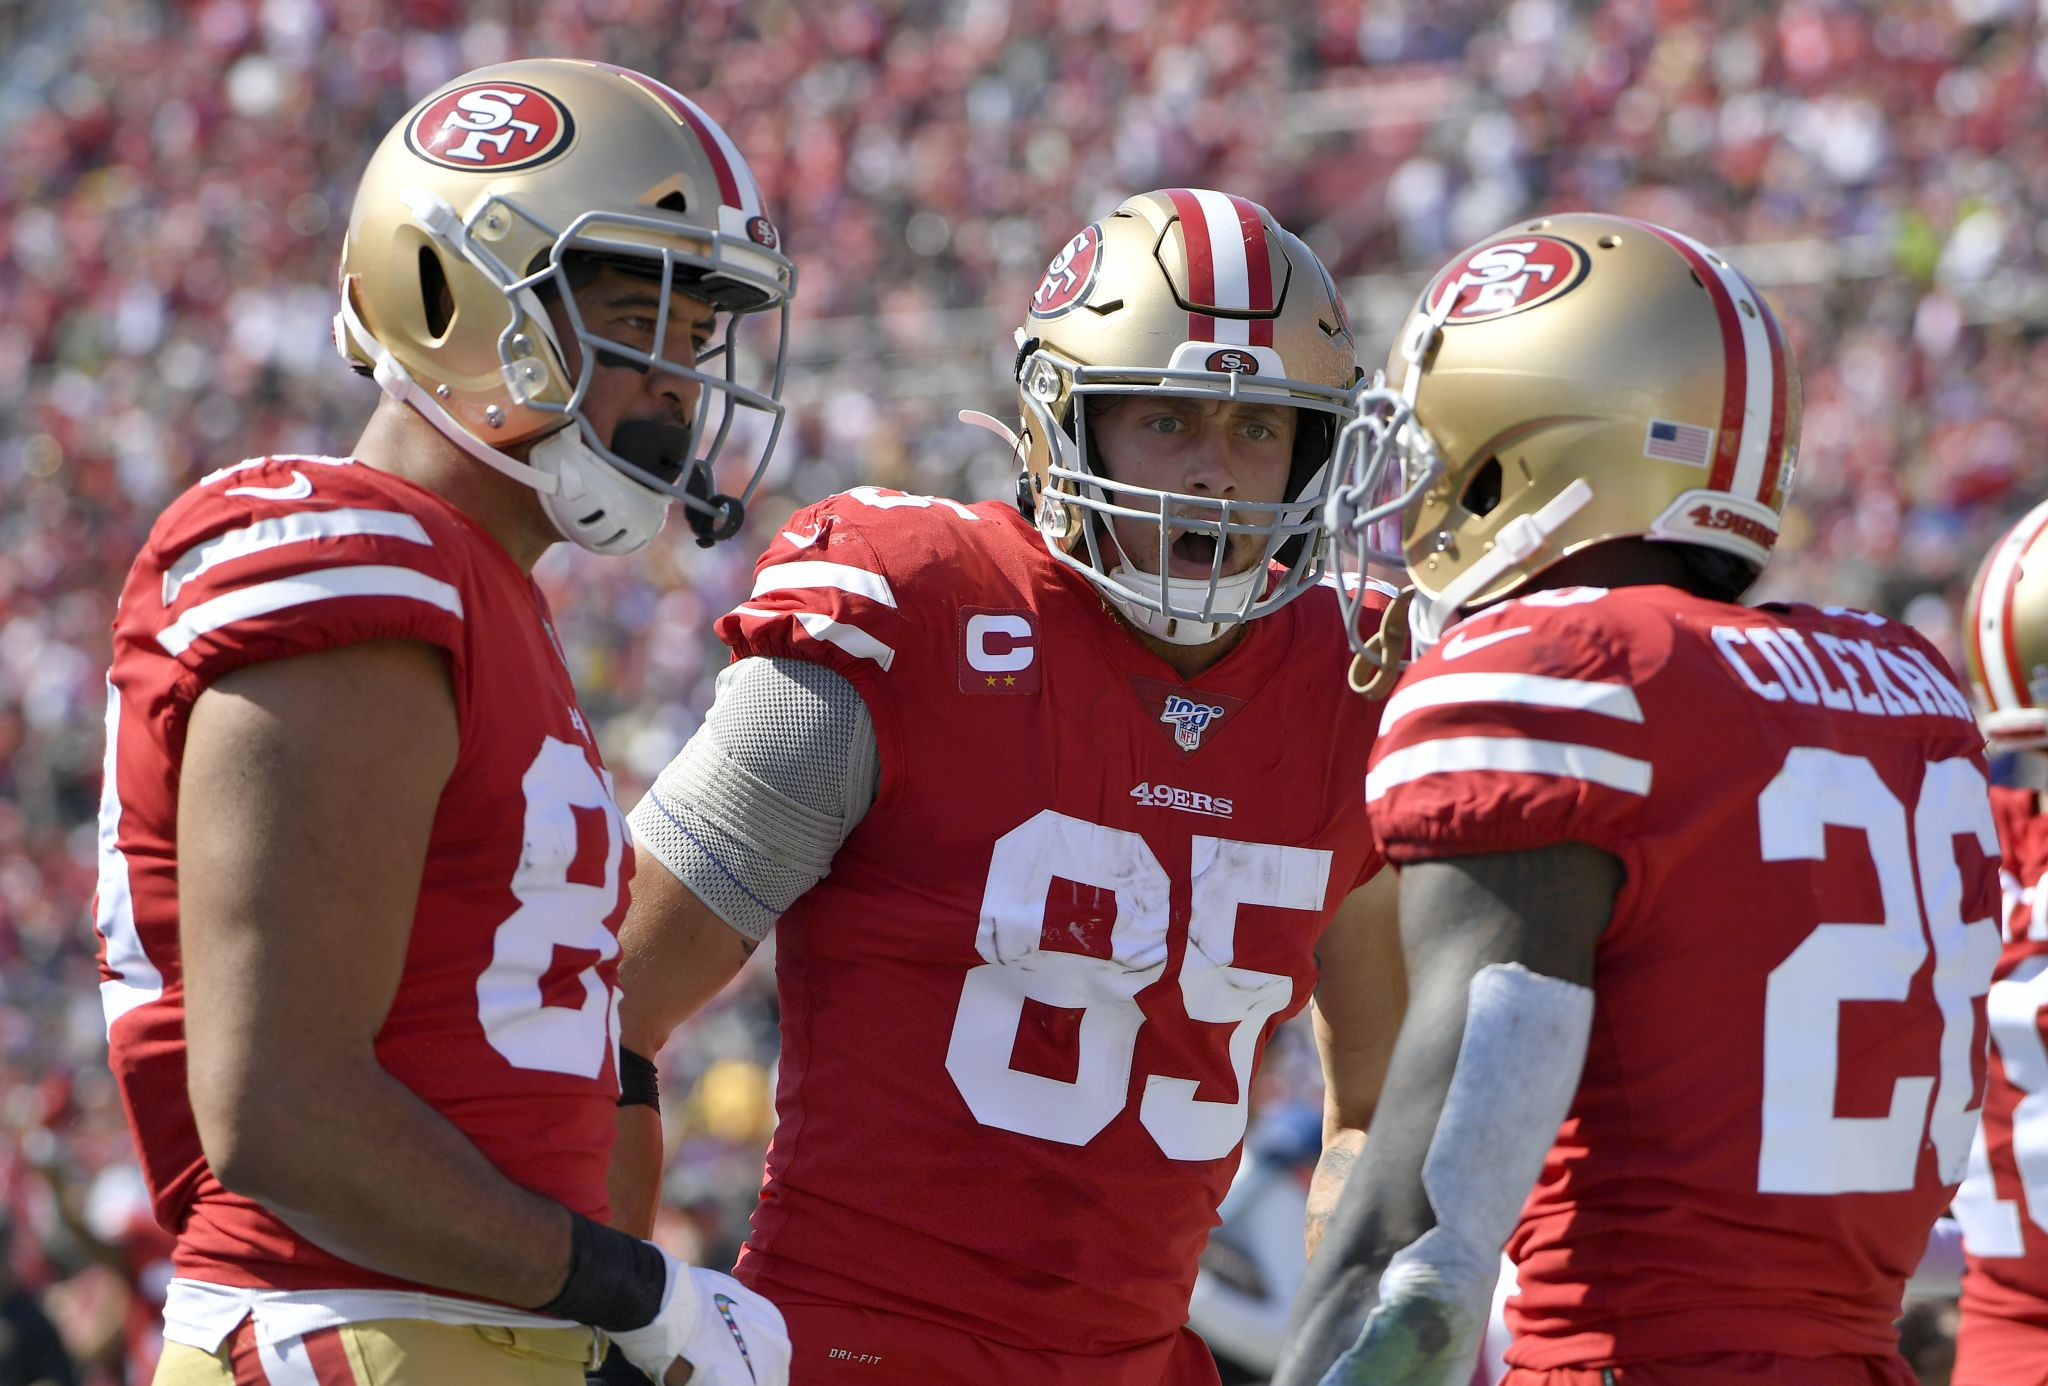 49ers Ticket Prices Are Spiking Because The 49ers Are Good